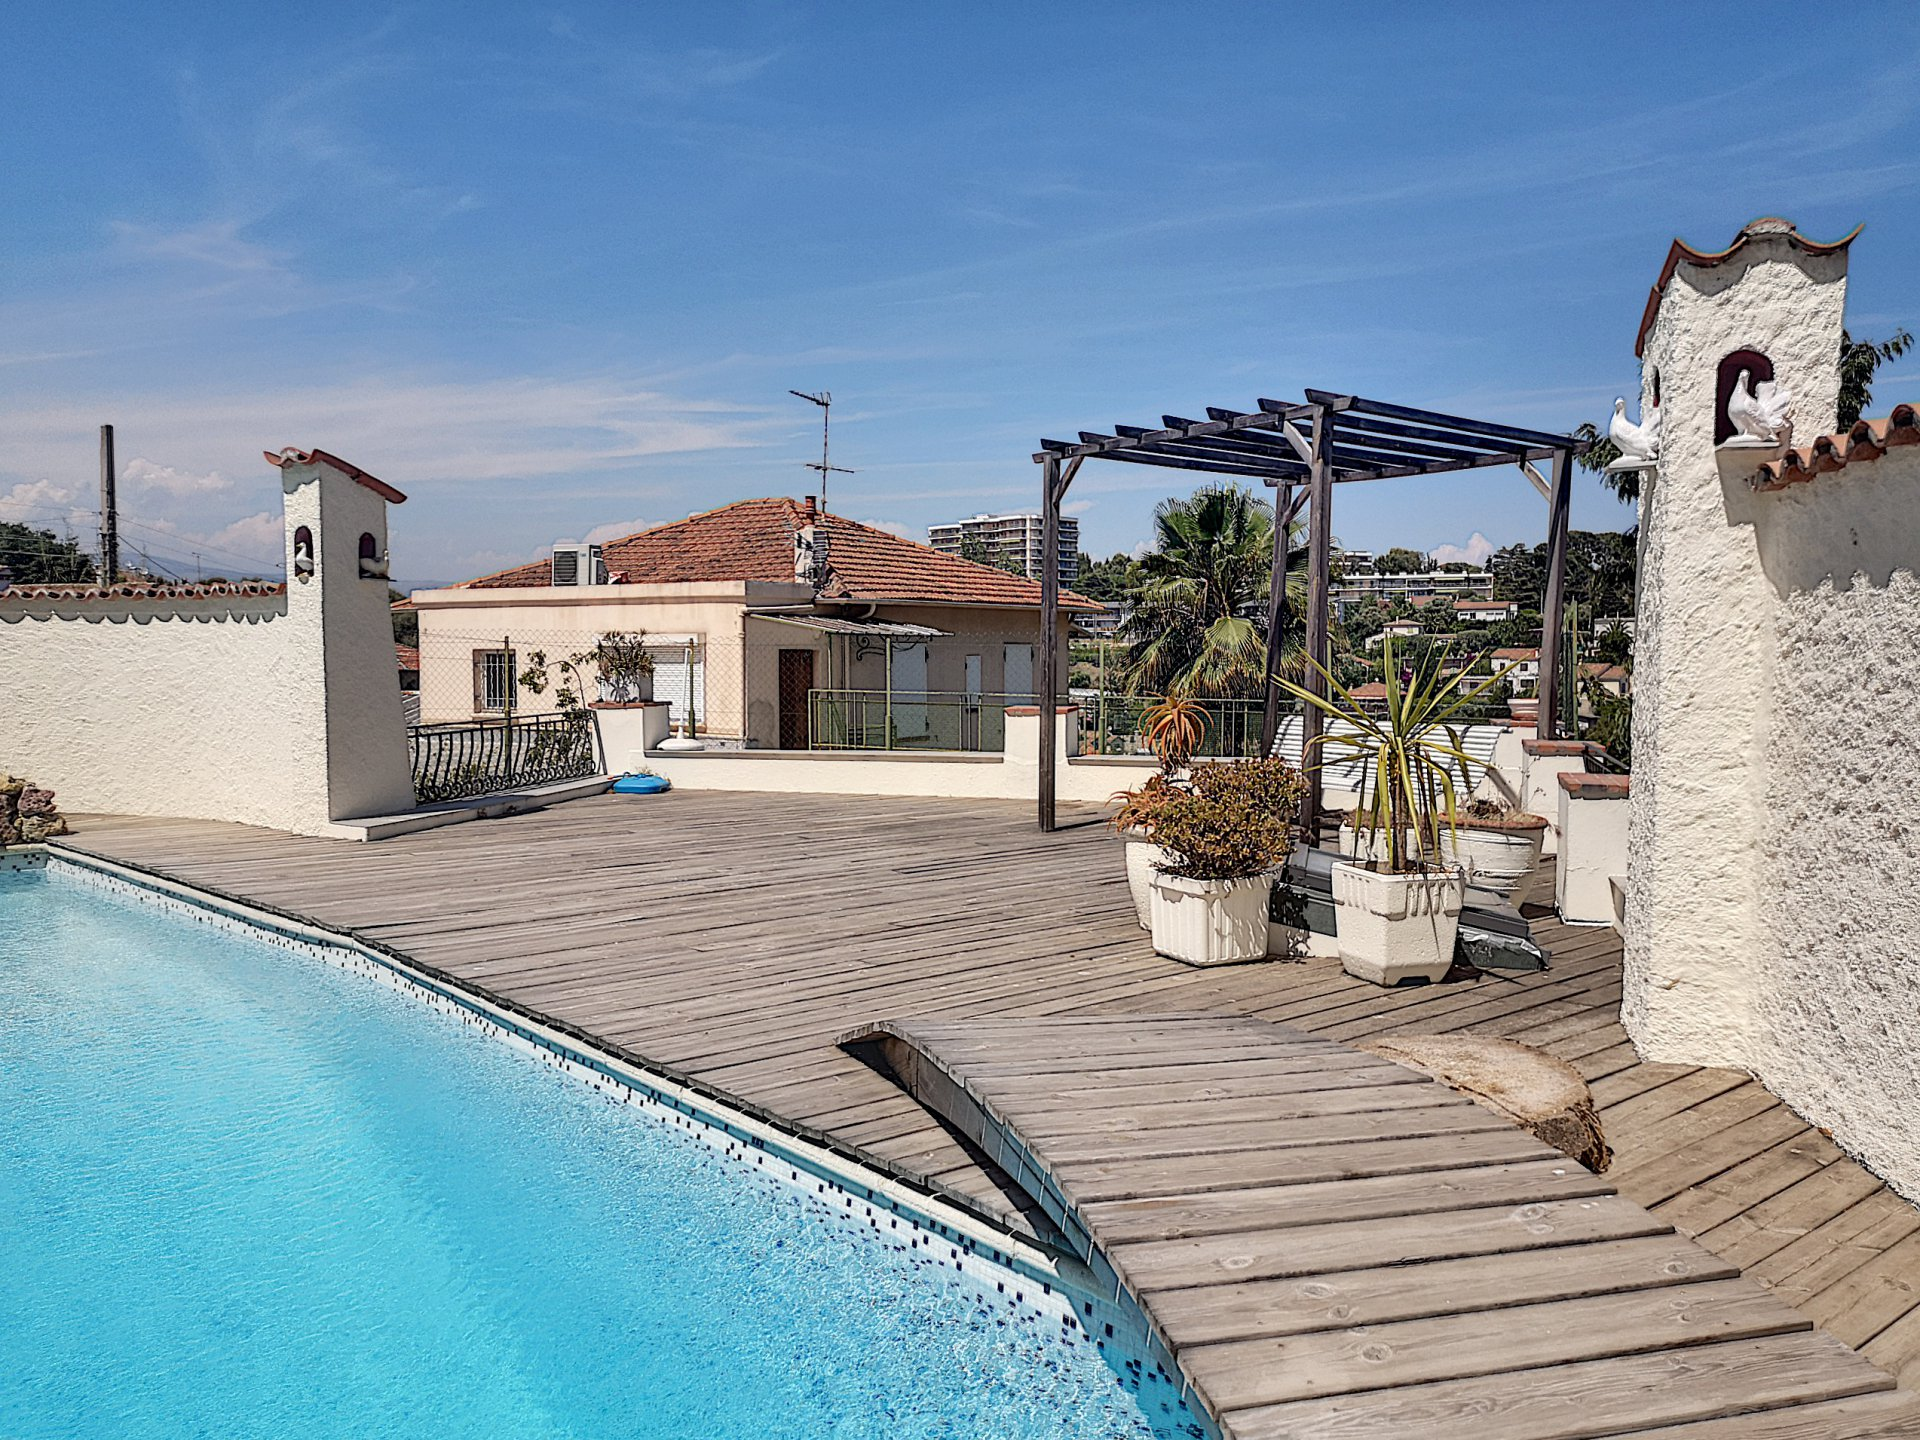 ANTIBES (06600) - MAISON - 2 PIECES - PISCINE